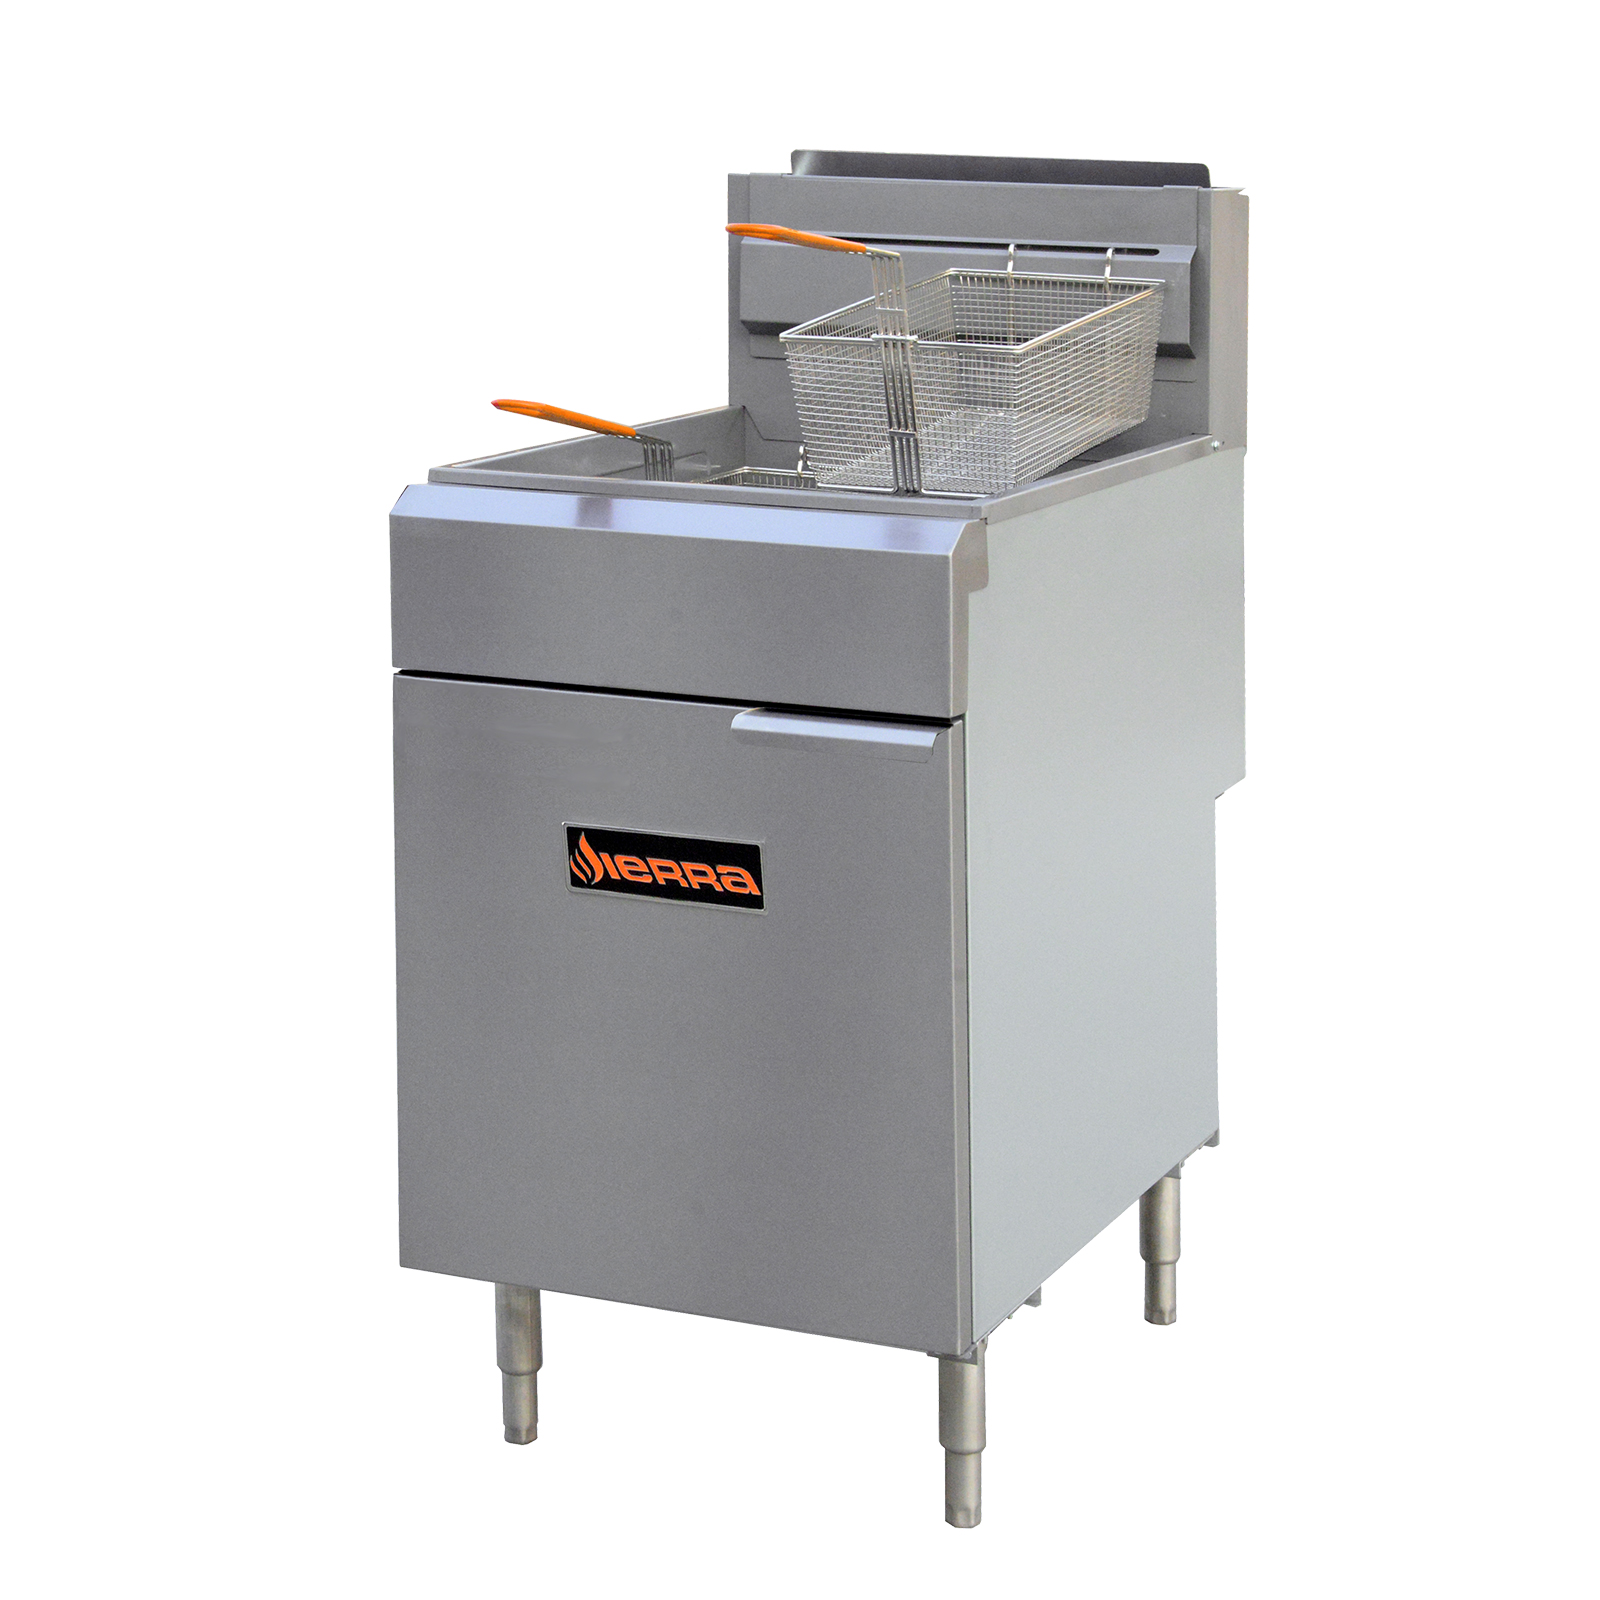 MVP SRF-75/80-LP fryer, gas, floor model, full pot